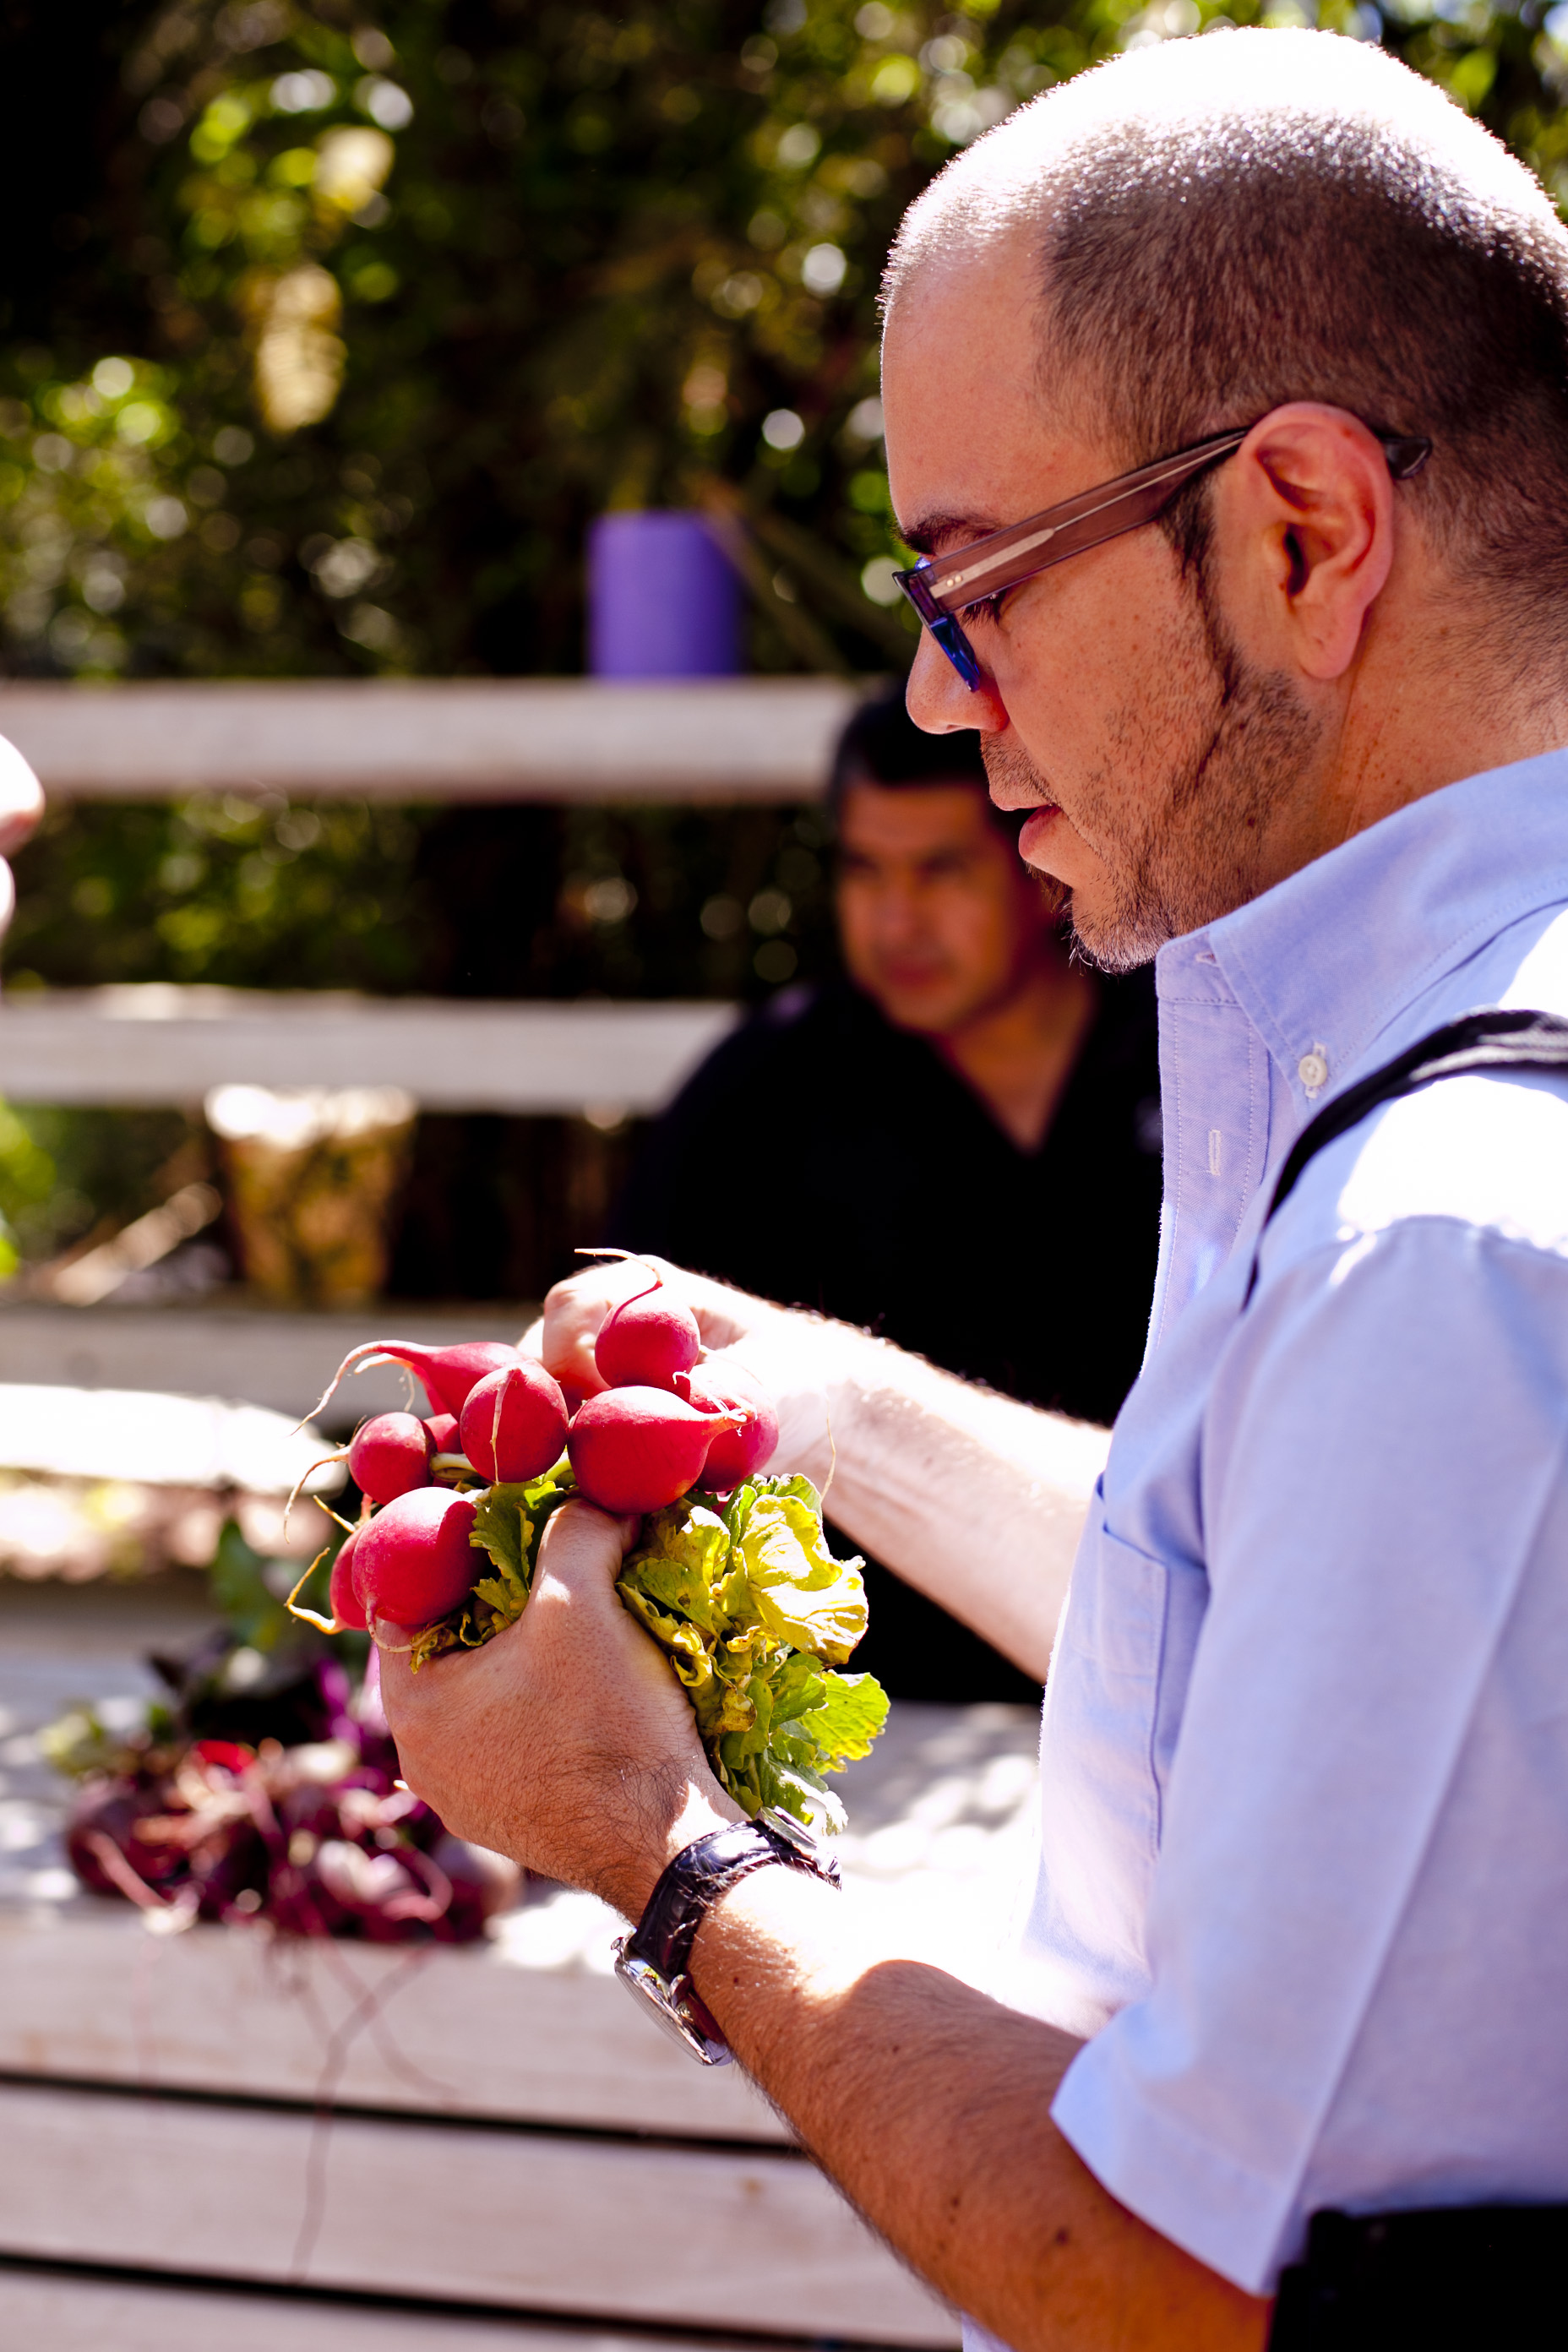 man holding bunch of beet roots in Mexico City